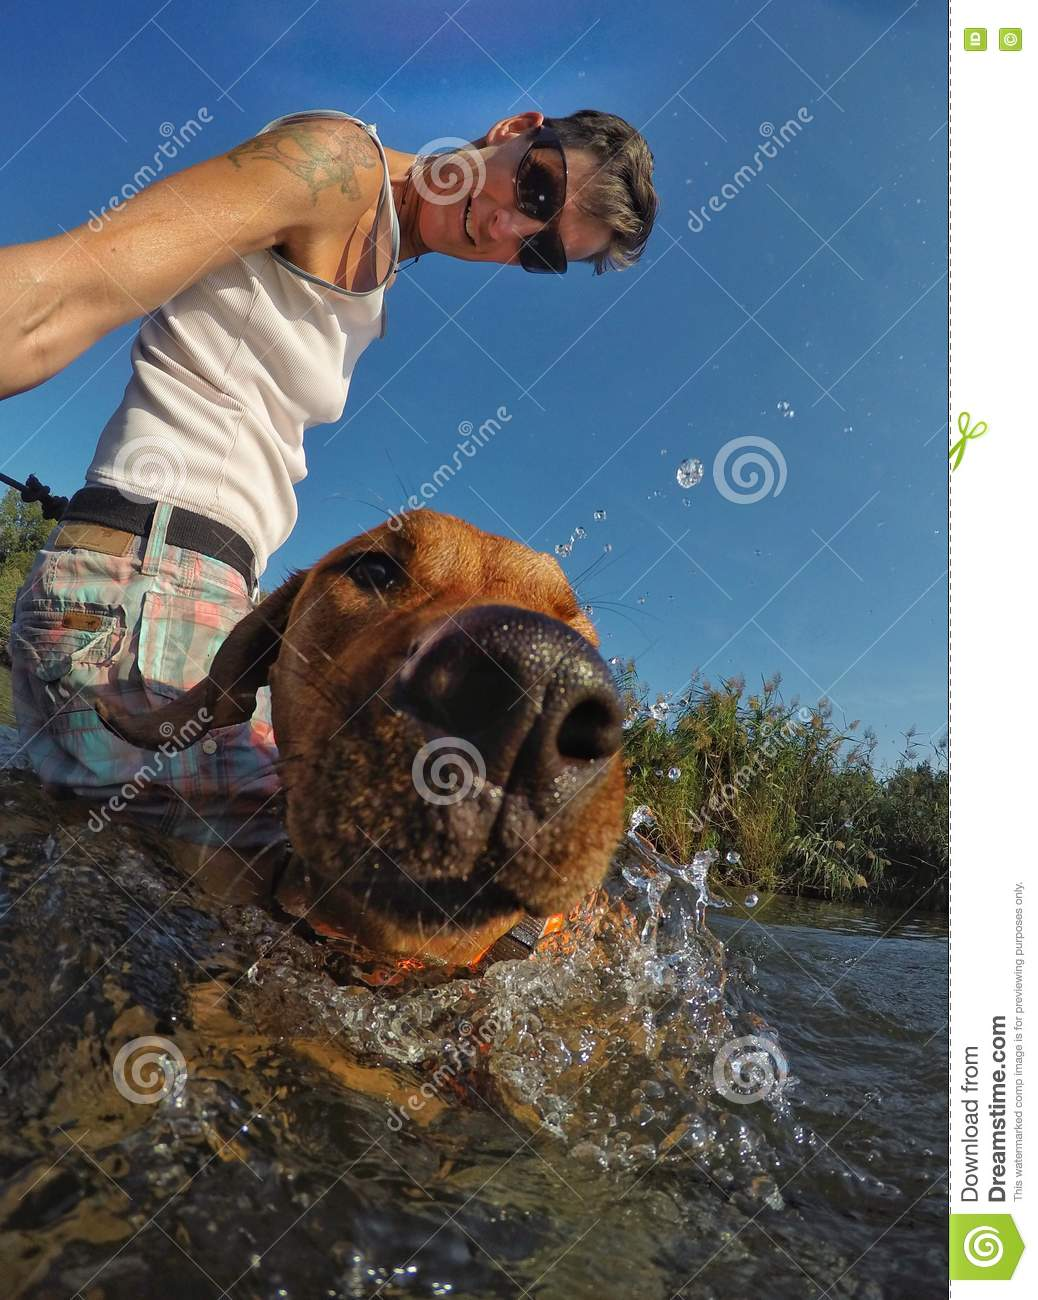 Dogs view out of the water